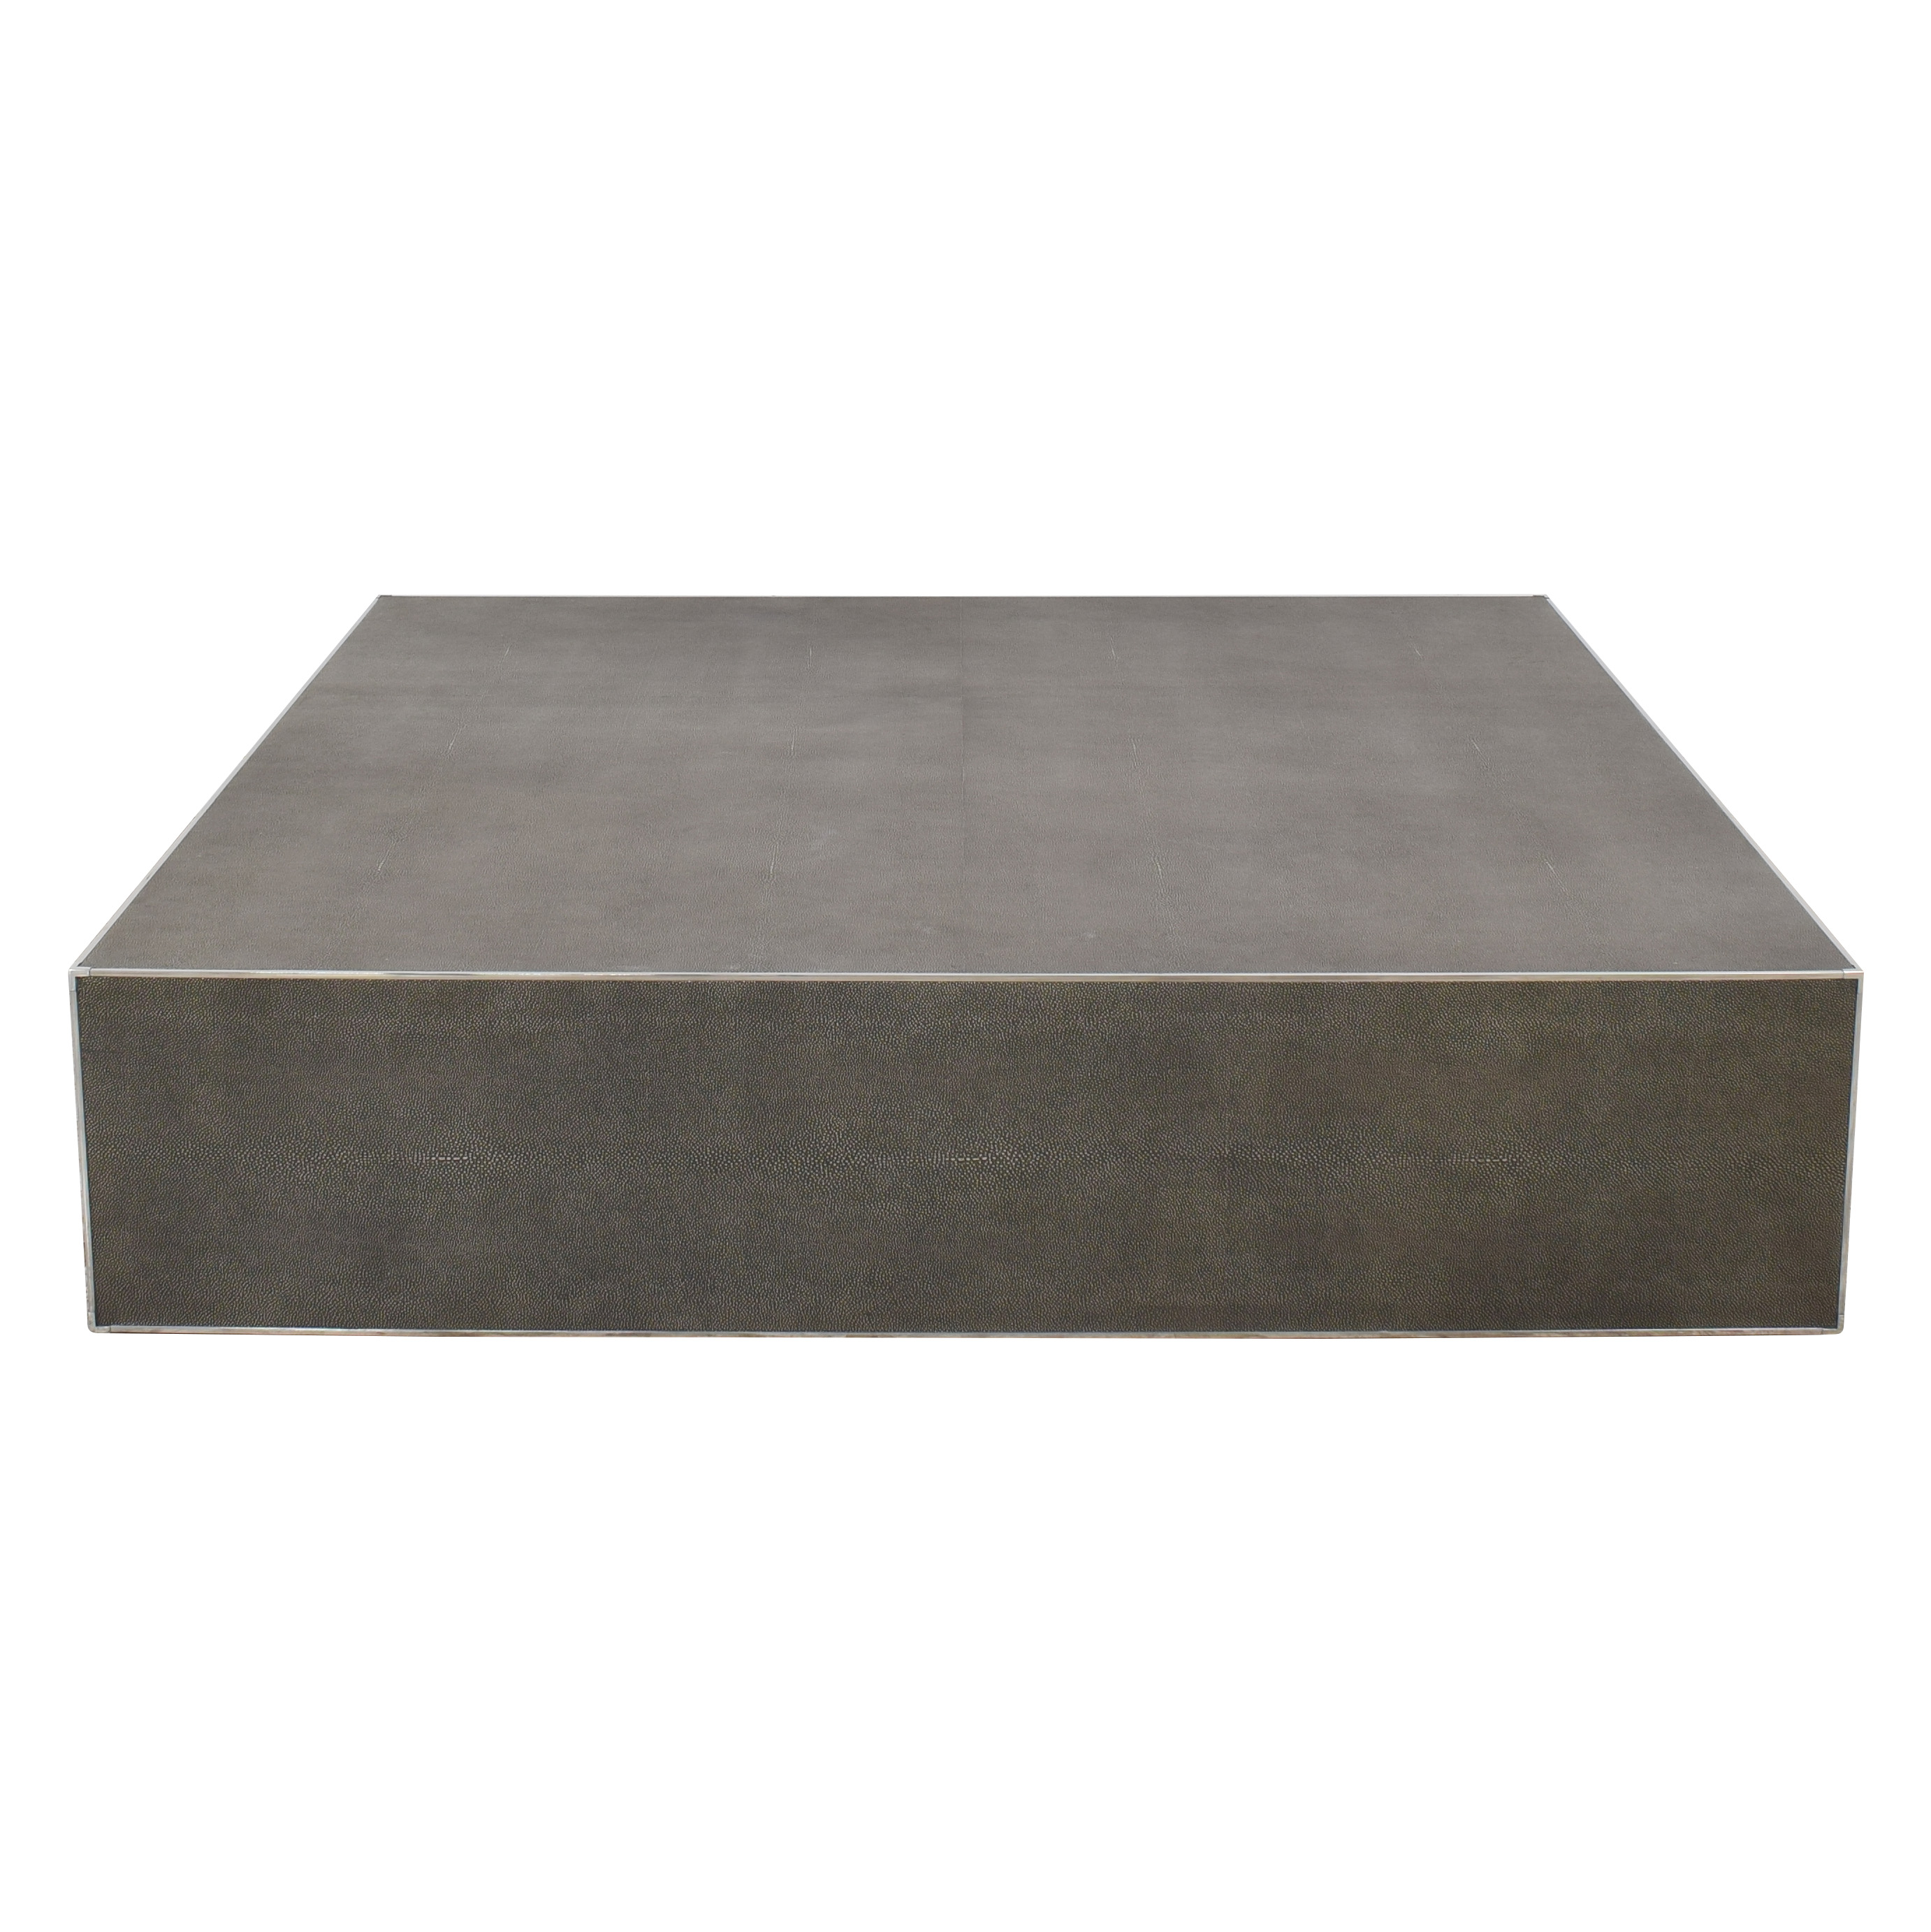 Restoration Hardware Restoration Hardware Saunderson Shagreen Cube Coffee Table dimensions